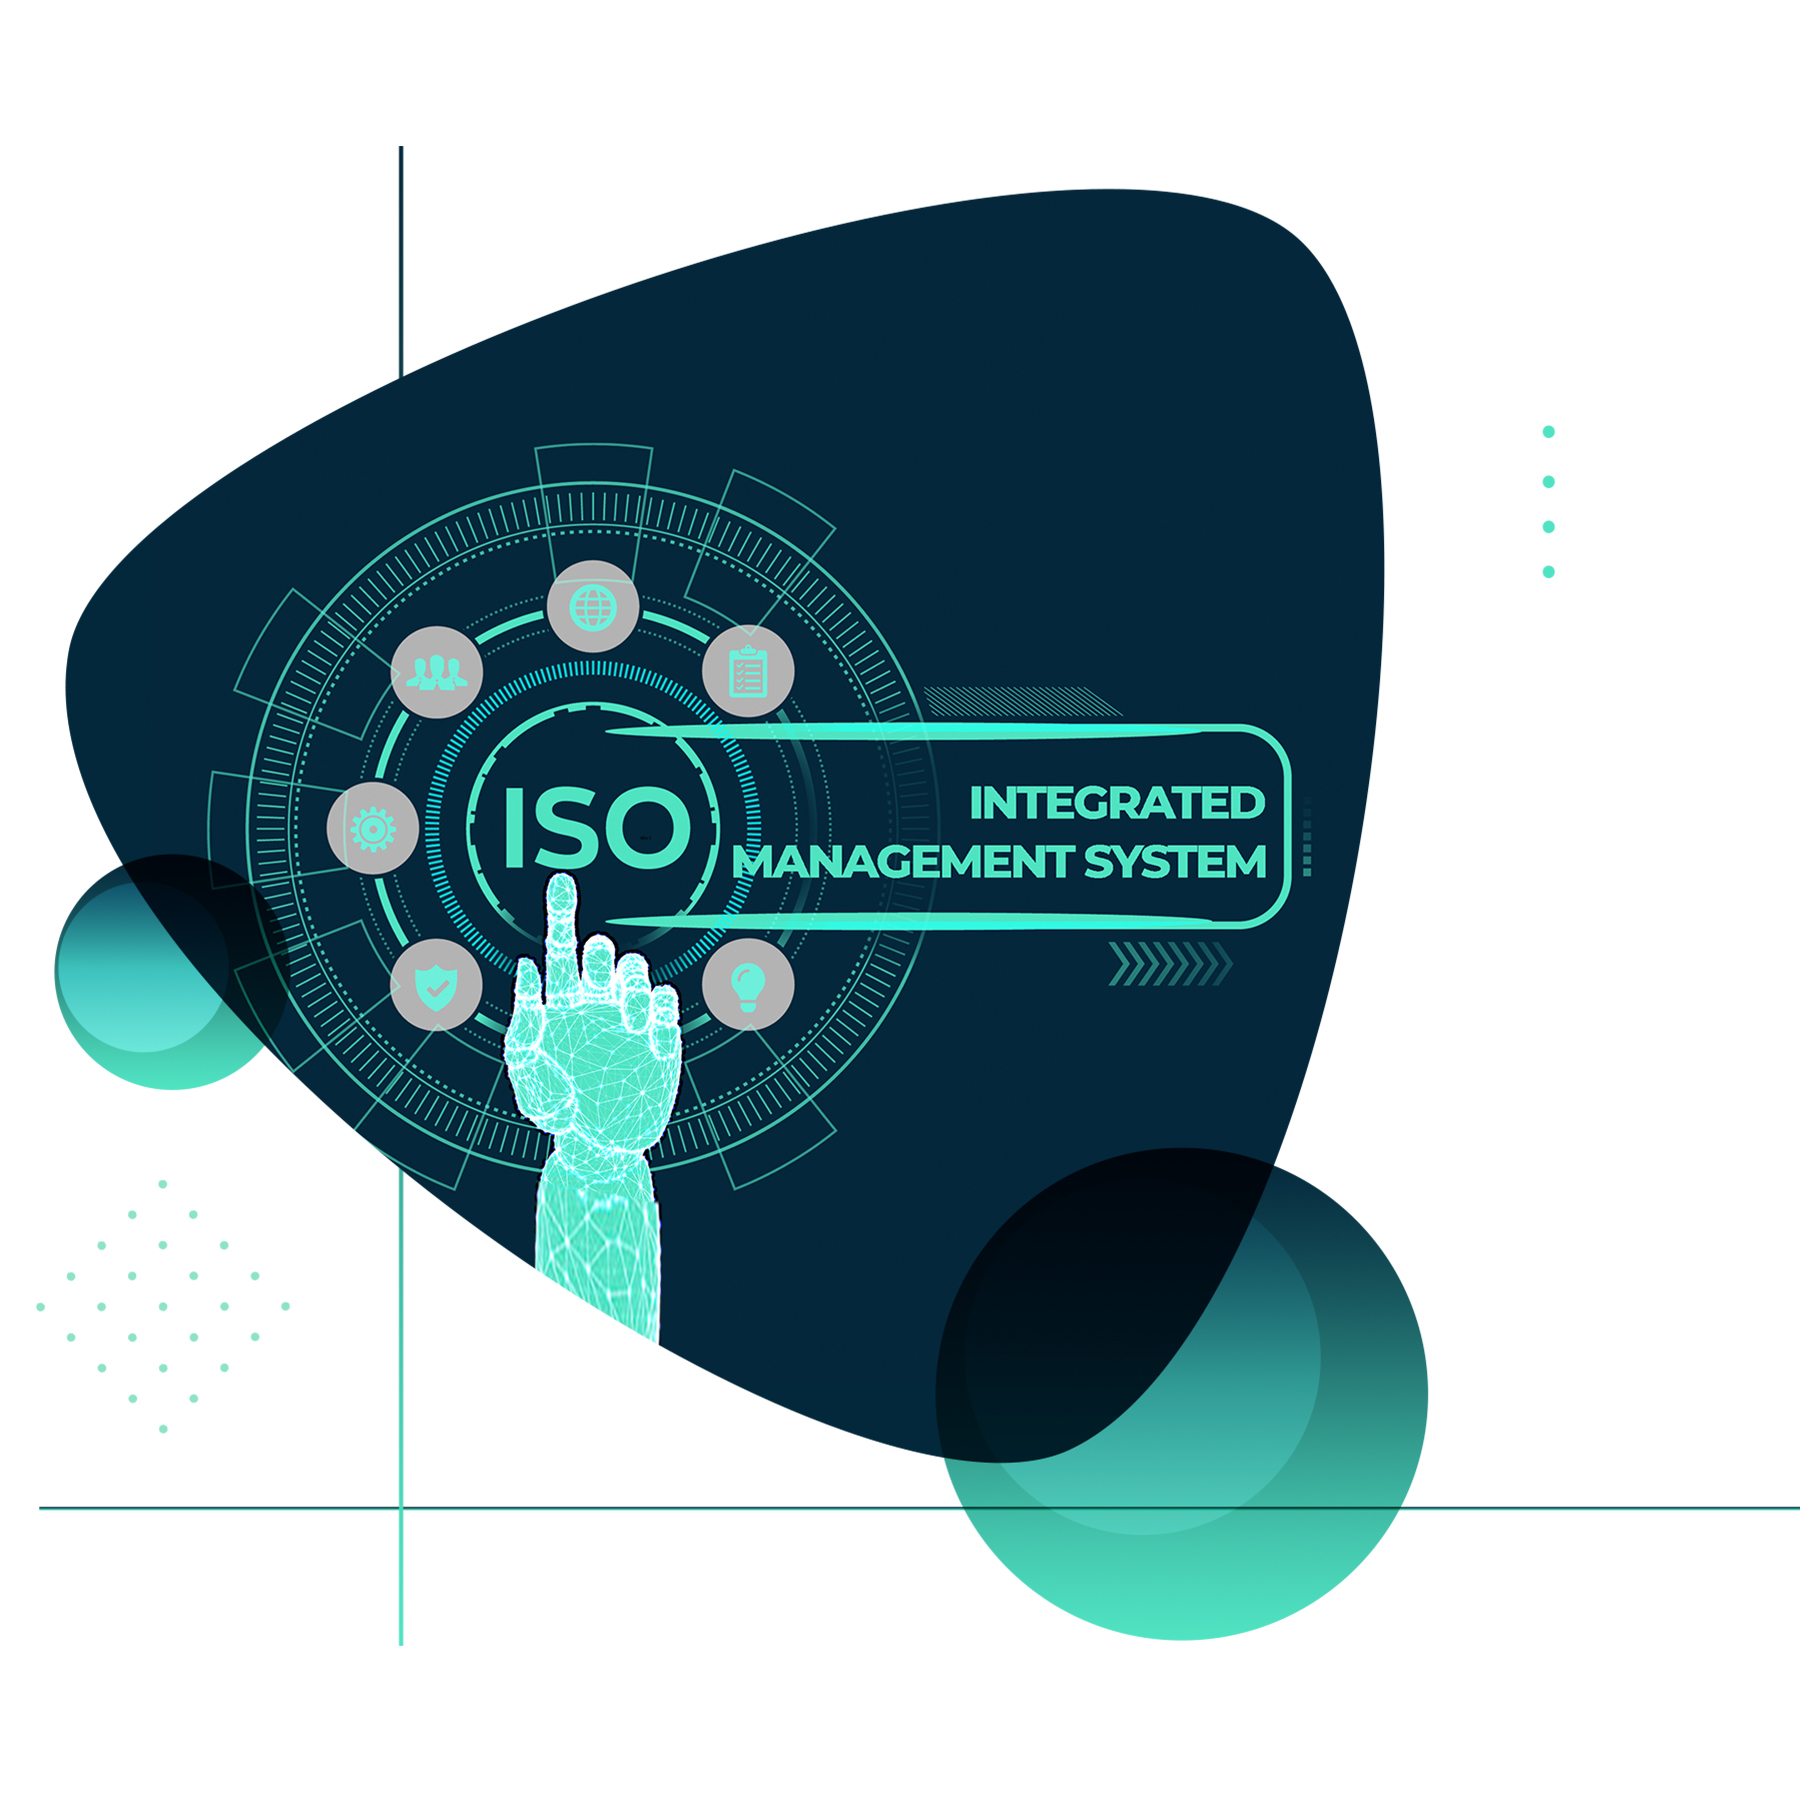 ISO Integrated Management System